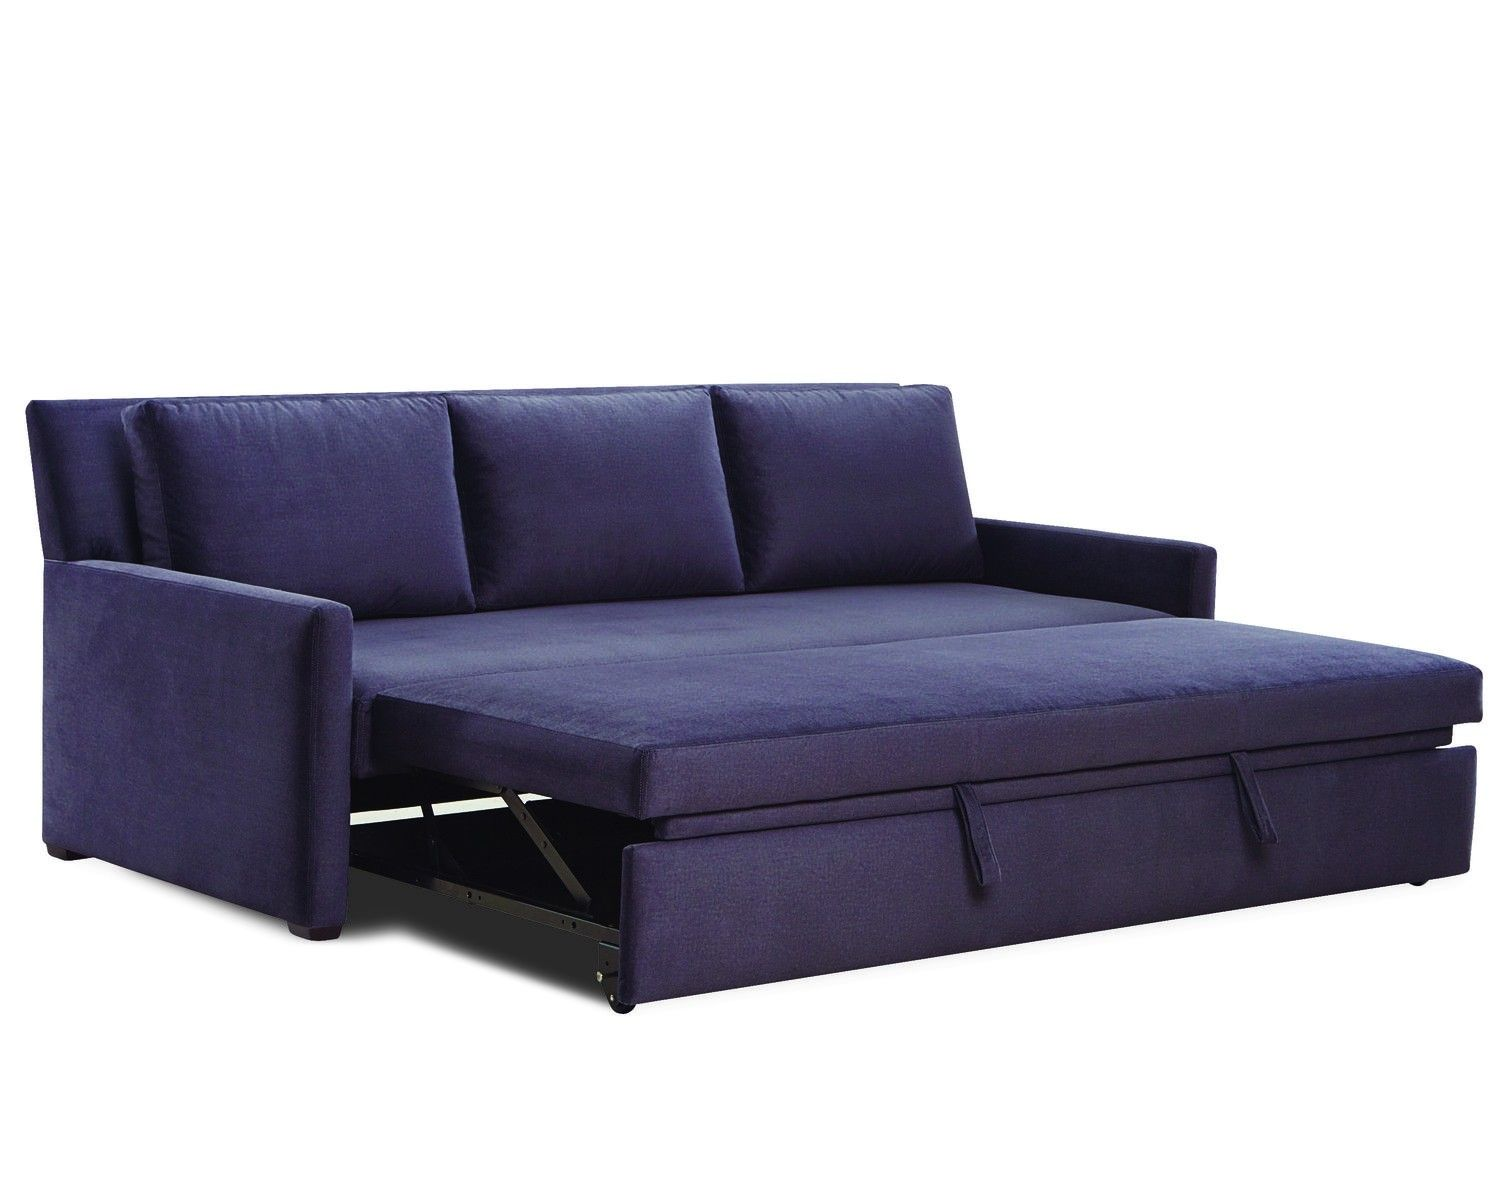 Aspen Pull Out Pop Up Sleeper Sofa Full Or Queen Sofas For Small Spaces Furniture Black Bedroom Furniture